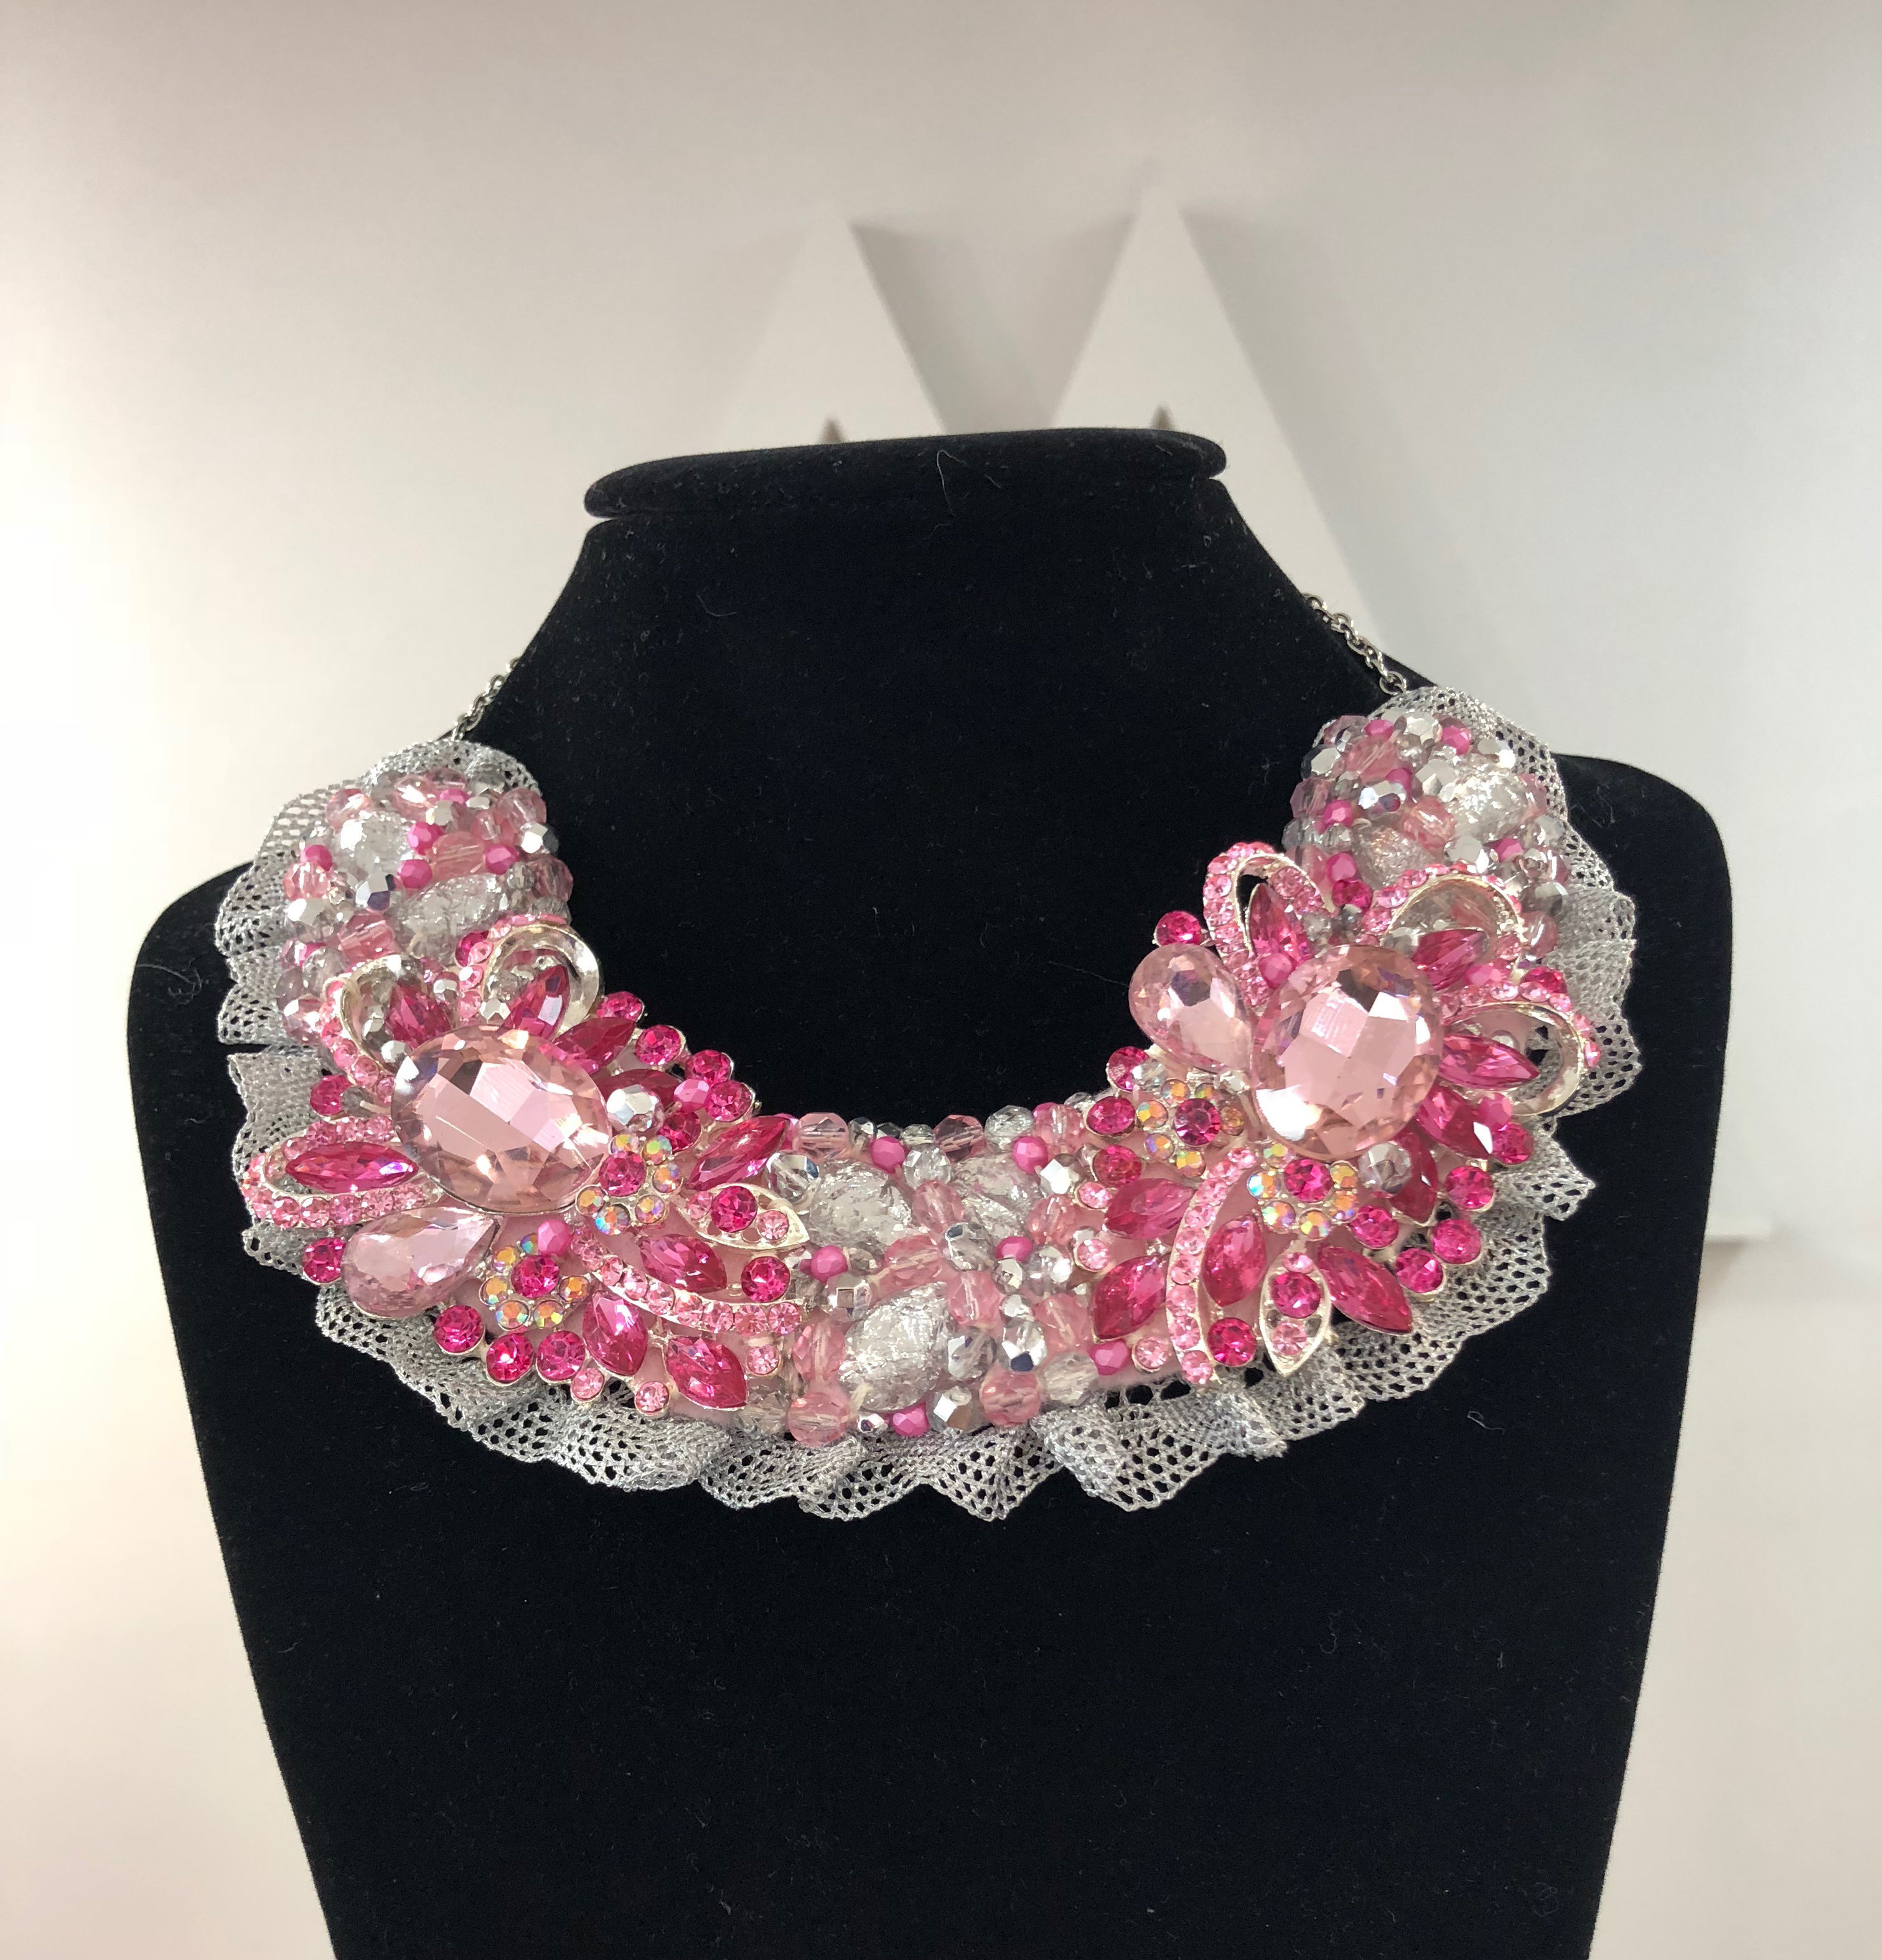 Aisling Maher Collar palepink/cerise/pearl/silver 28QRWRVW80JW8